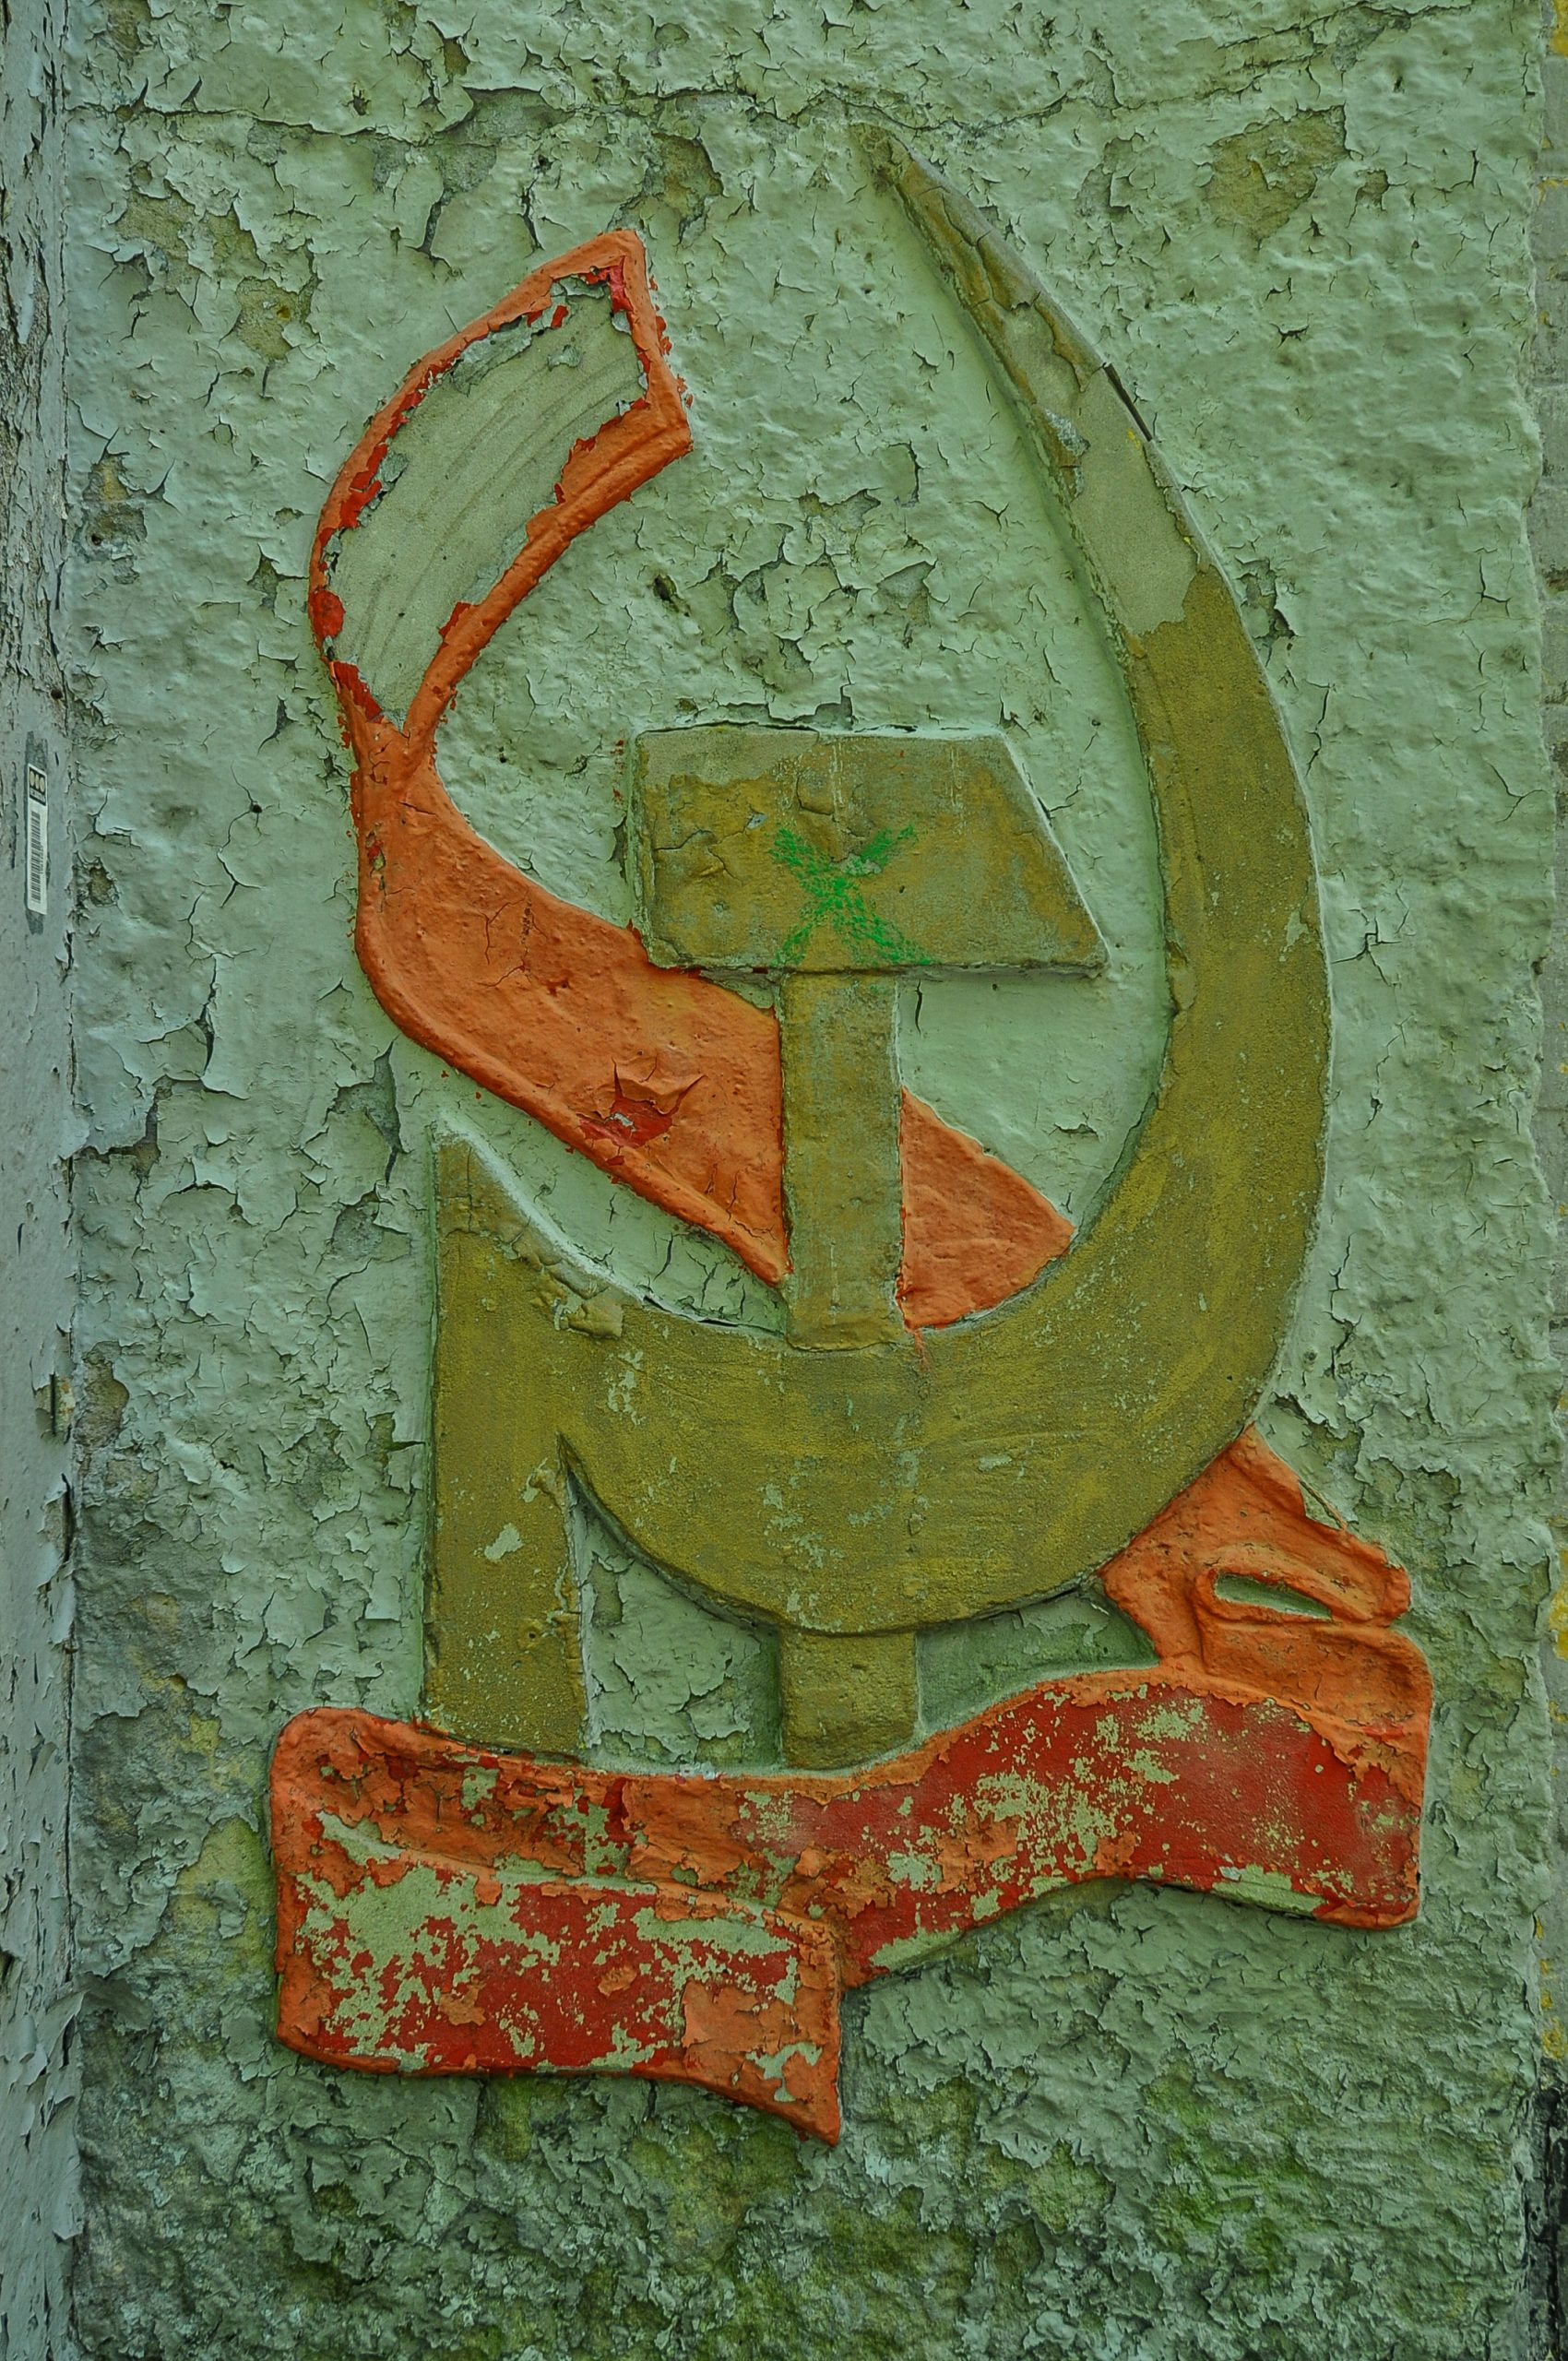 hammer and sickle kaserne krampnitz abandoned potsdam berlin Kavallerieschule barracks Panzertruppenschule nazi soviet military base germany deutschland